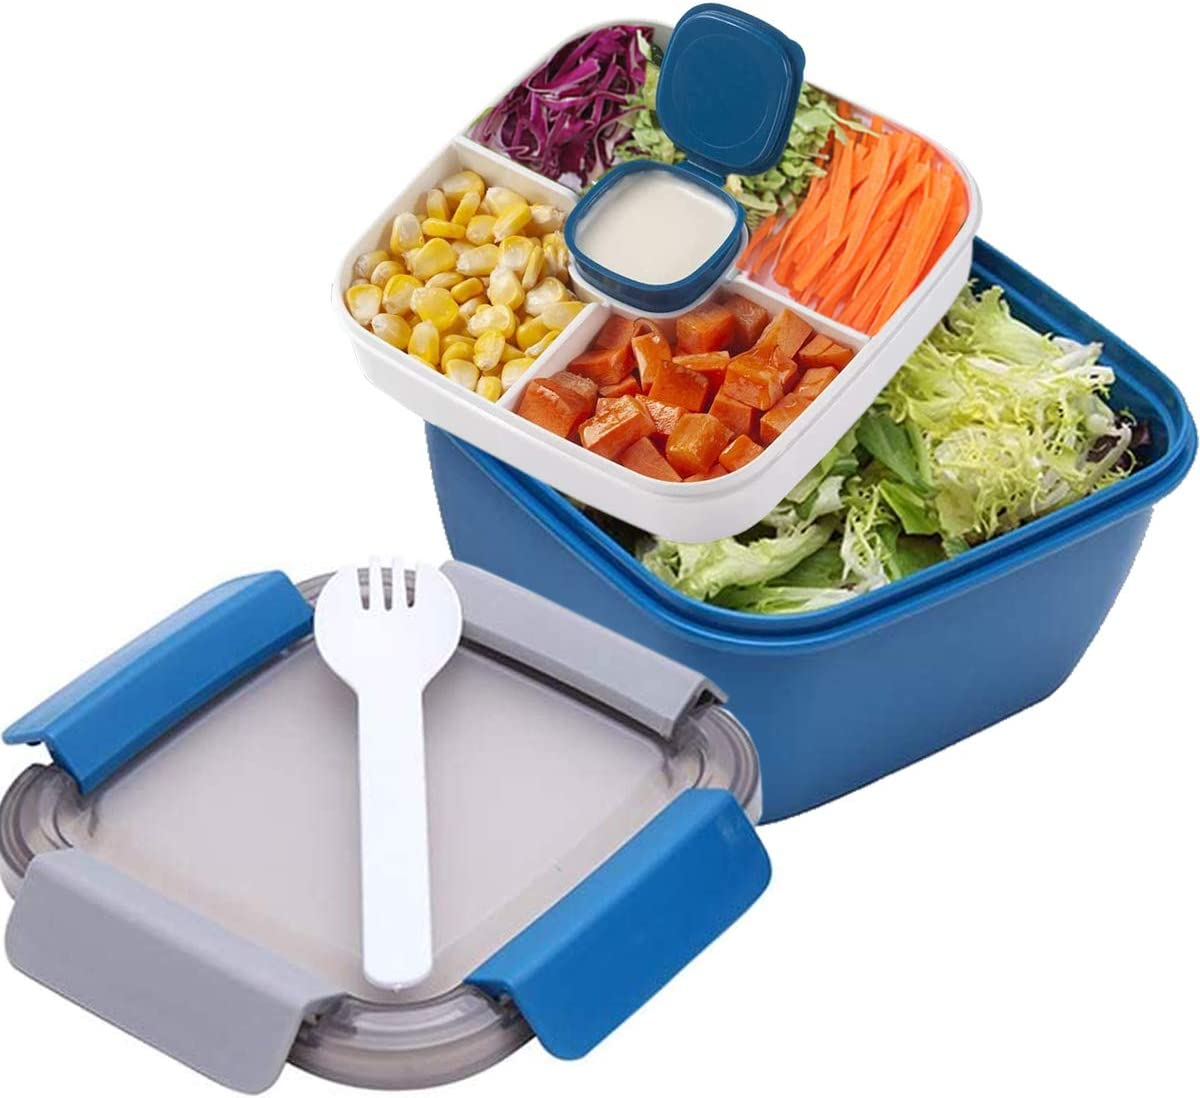 Salad Lunch Container with Large 51-oz Bowl, 3-Compartment Bento-Style Tray for Salad Toppings and Snacks, 3-oz Sauce Container for Dressings, and Built-In Reusable Fork (Blue)